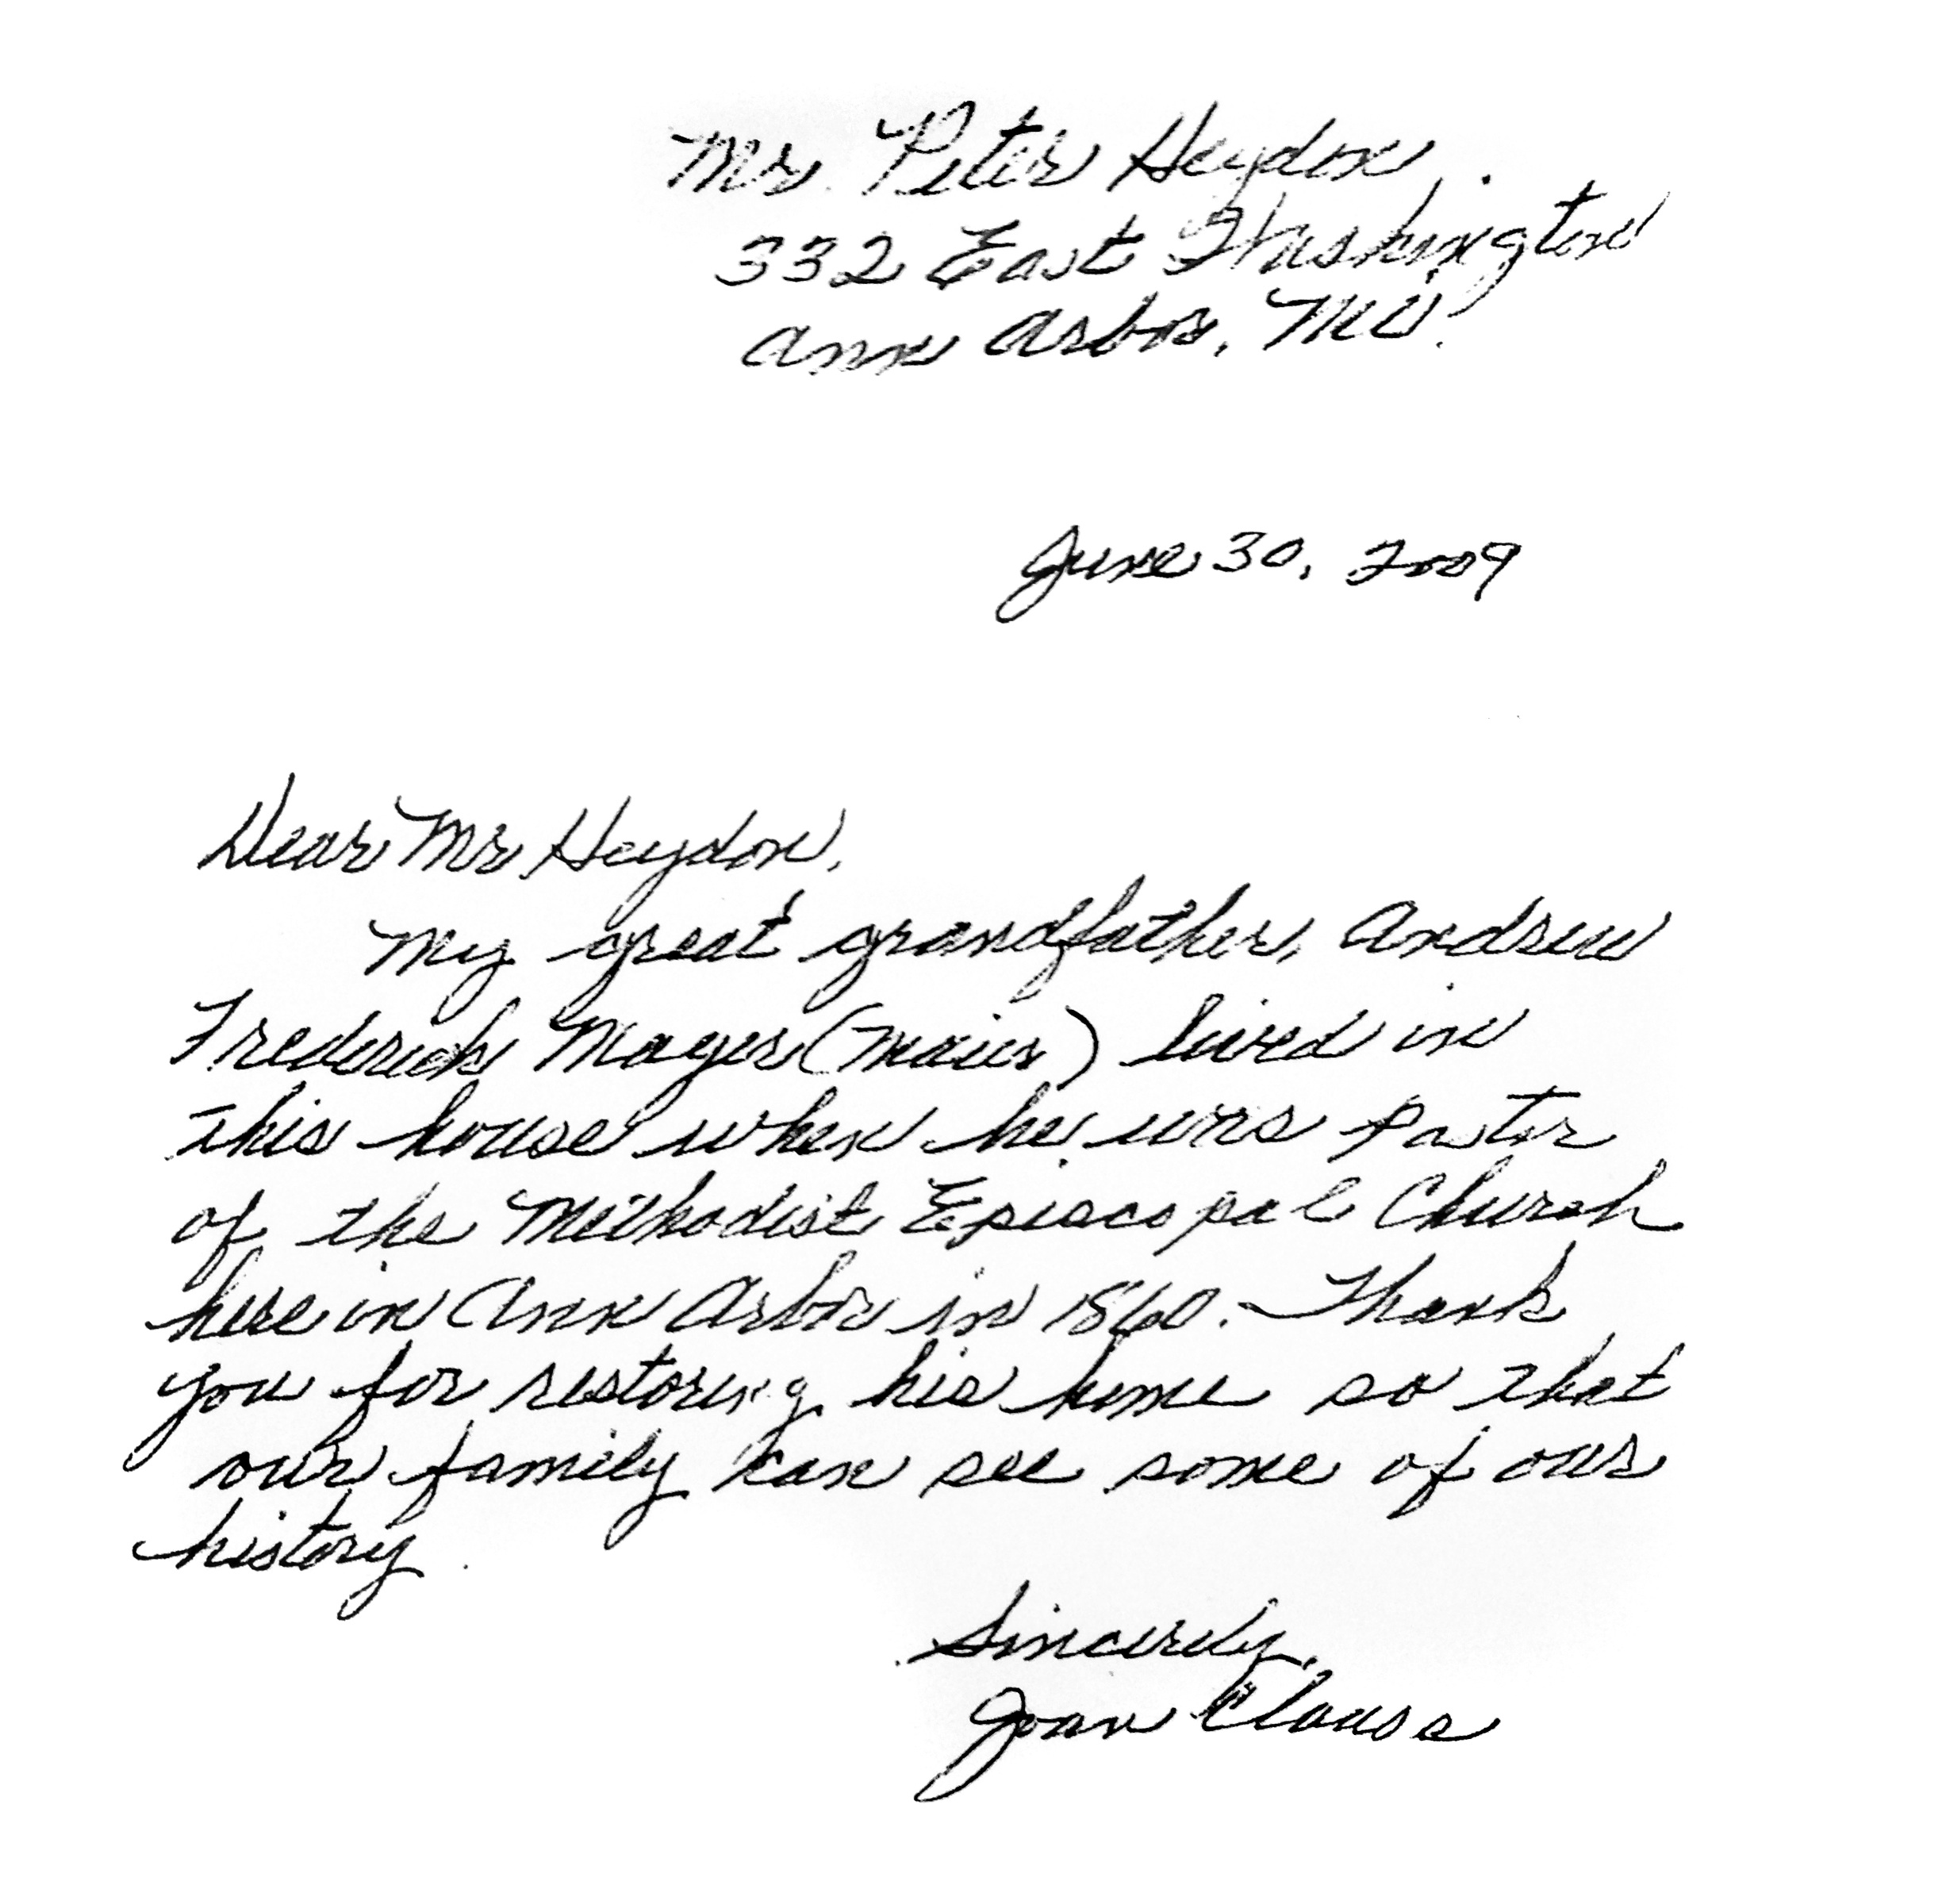 Thank you letter, 2009 image